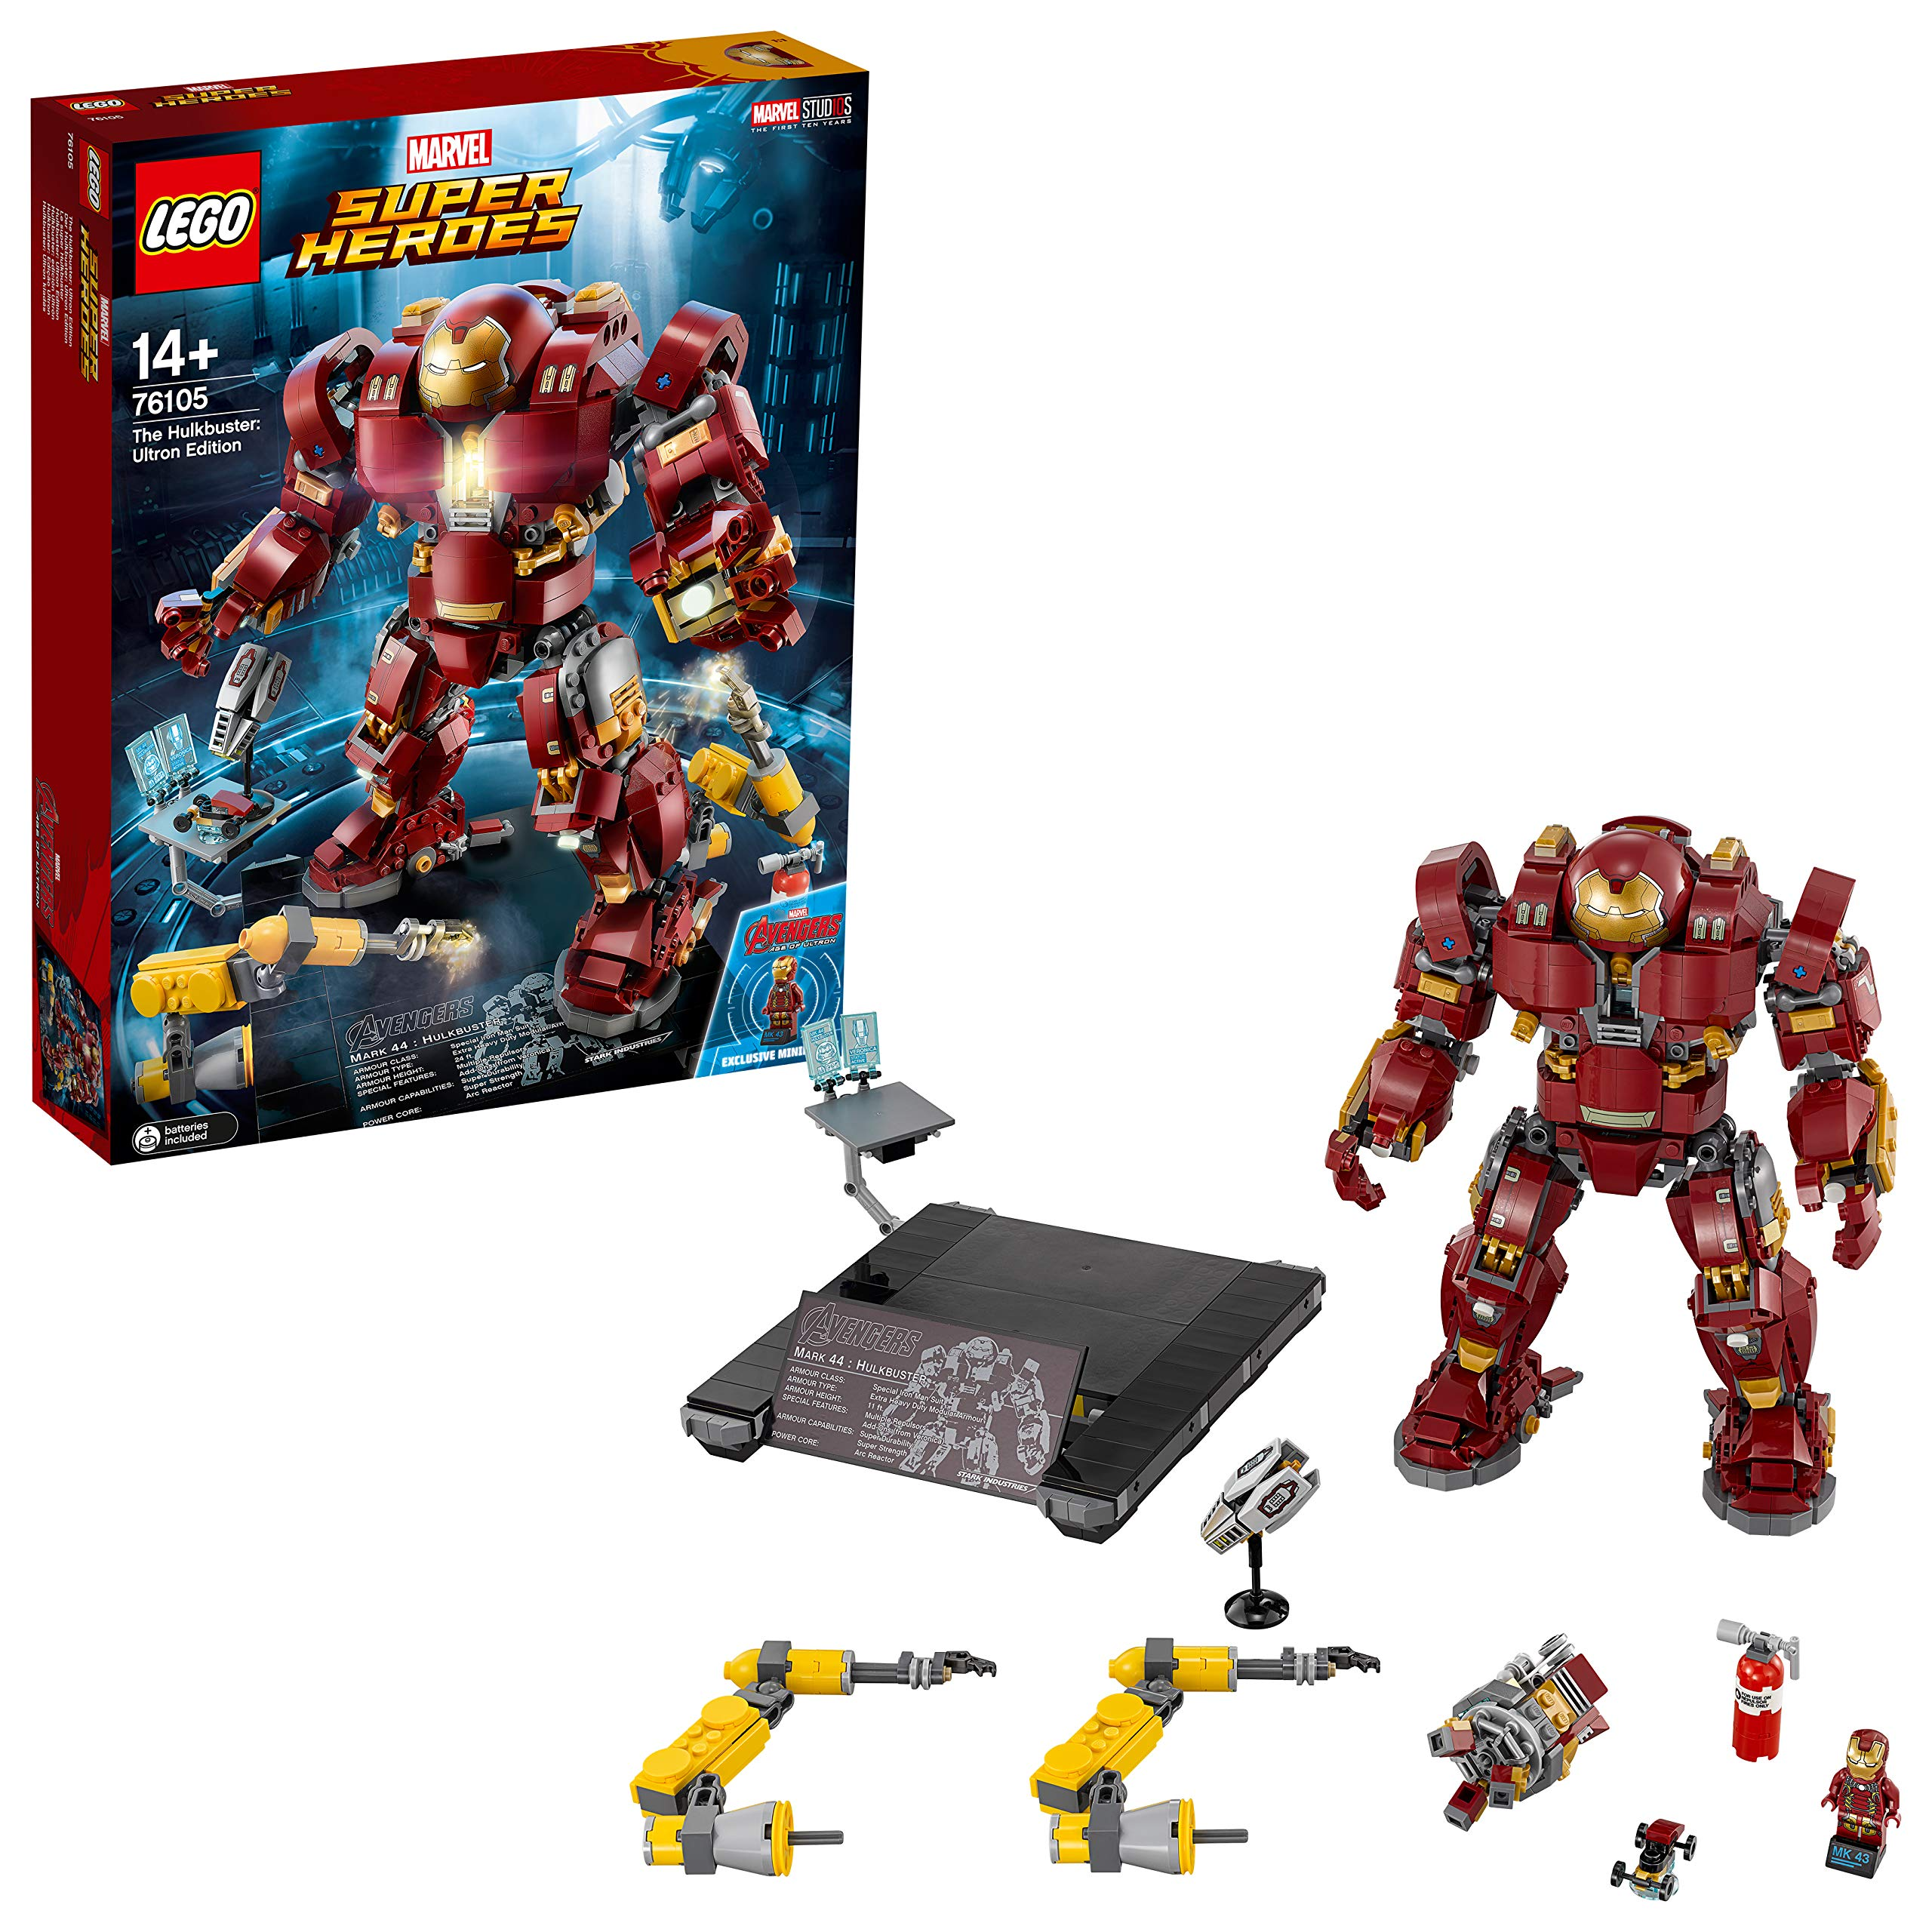 레고 헐크버스터 울트론 에디션 76105 빌딩 키트 (1363 피스) LEGO Marvel Super Heroes Avengers: Infinity War The Hulkbuster: Ultron Edition 76105 Building Kit (1363 Pieces)